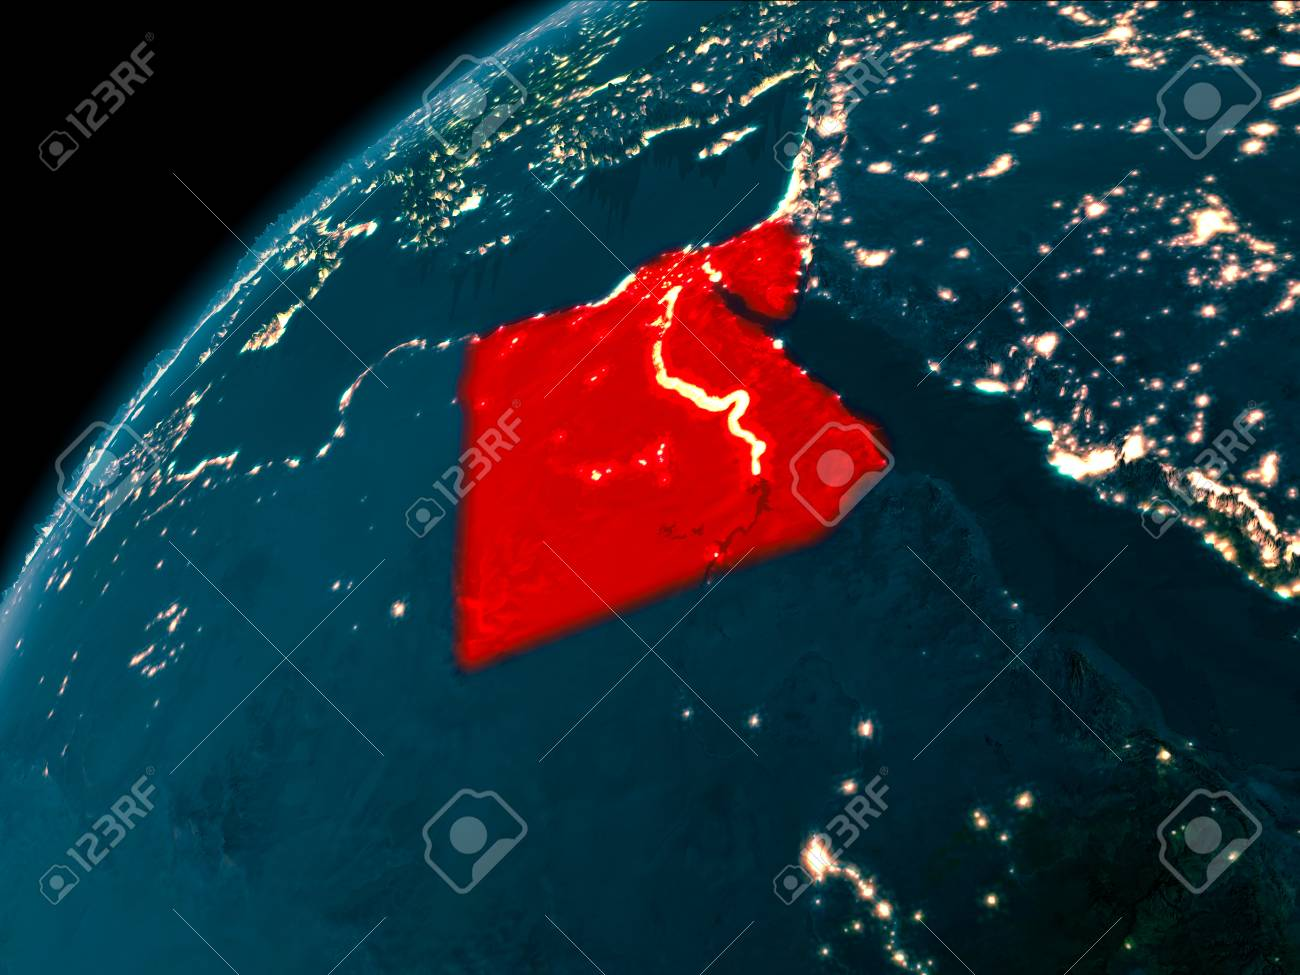 Night map of egypt as seen from space on planet earth 3d illustration night map of egypt as seen from space on planet earth 3d illustration gumiabroncs Image collections